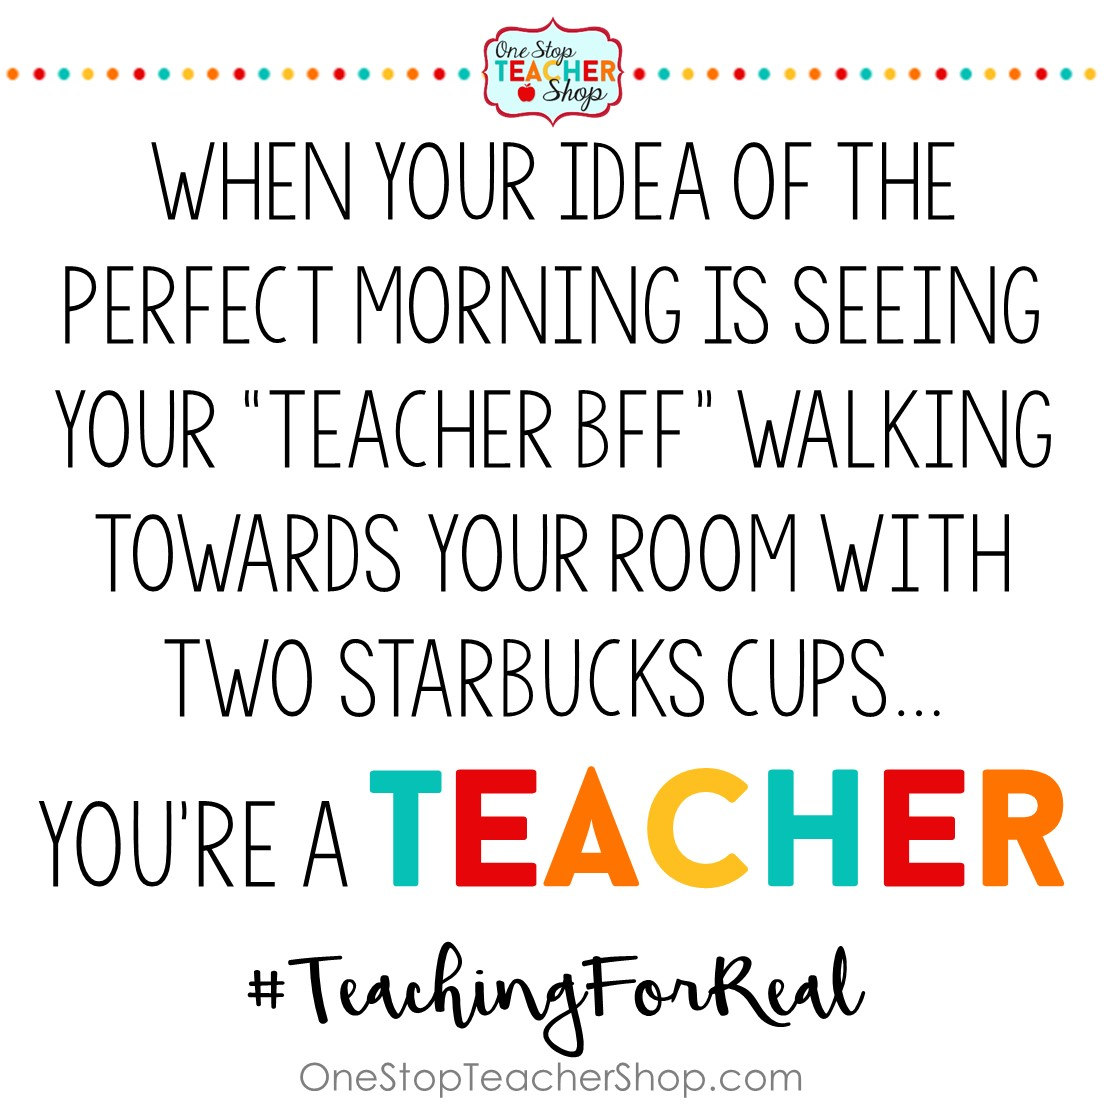 I love teacher humor! Here is a collection of funny teacher memes, quotes, and everything in between. Feel free to laugh out loud.